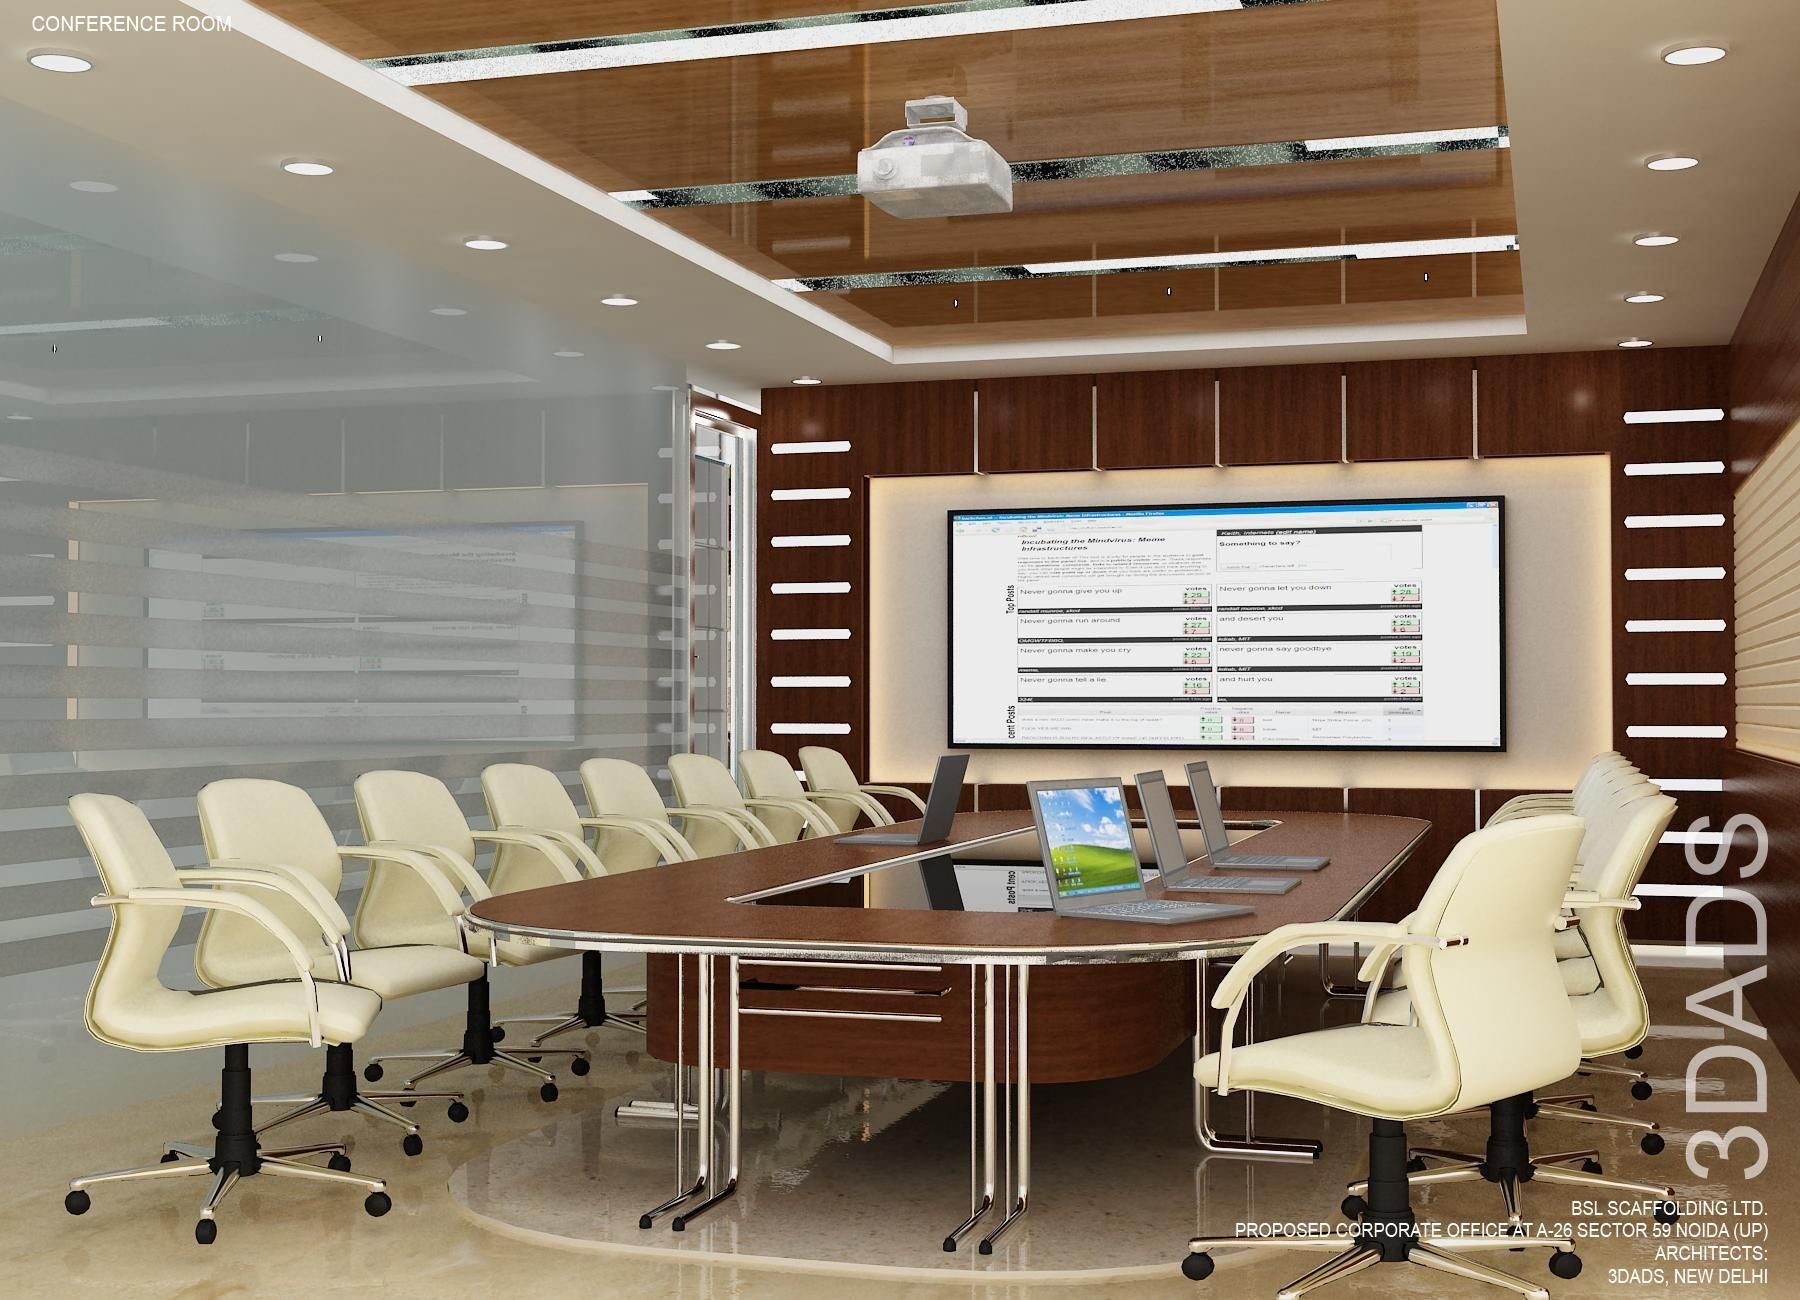 Modern office conference meeting room interior design by da best designers in also daarchitects on pinterest rh